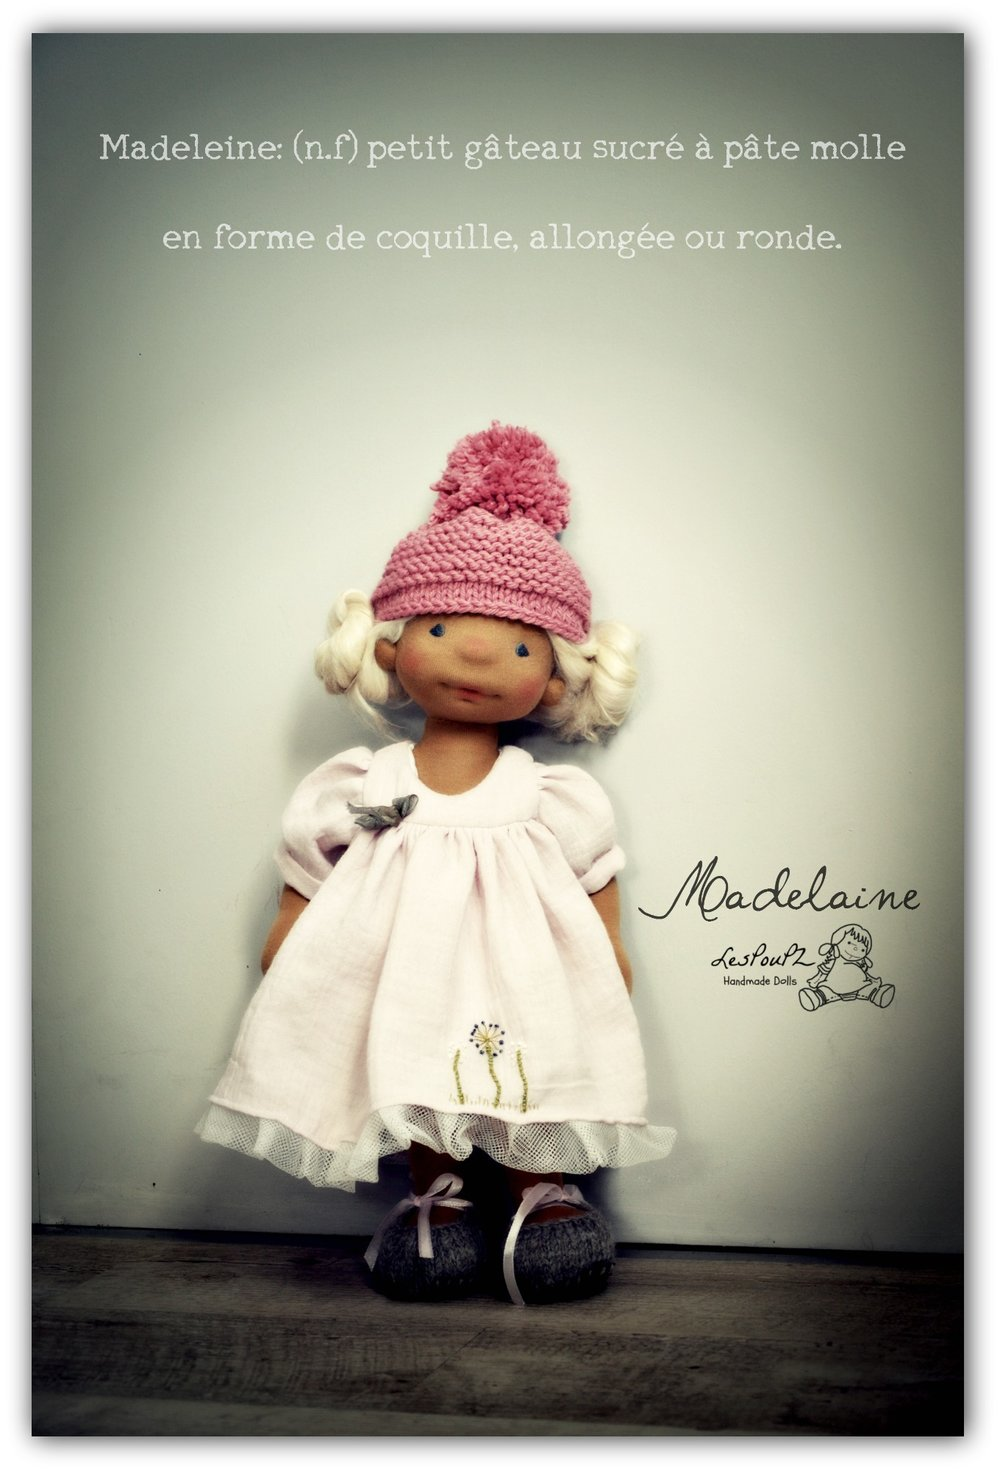 Madelaine will be happy to be part of your doll family